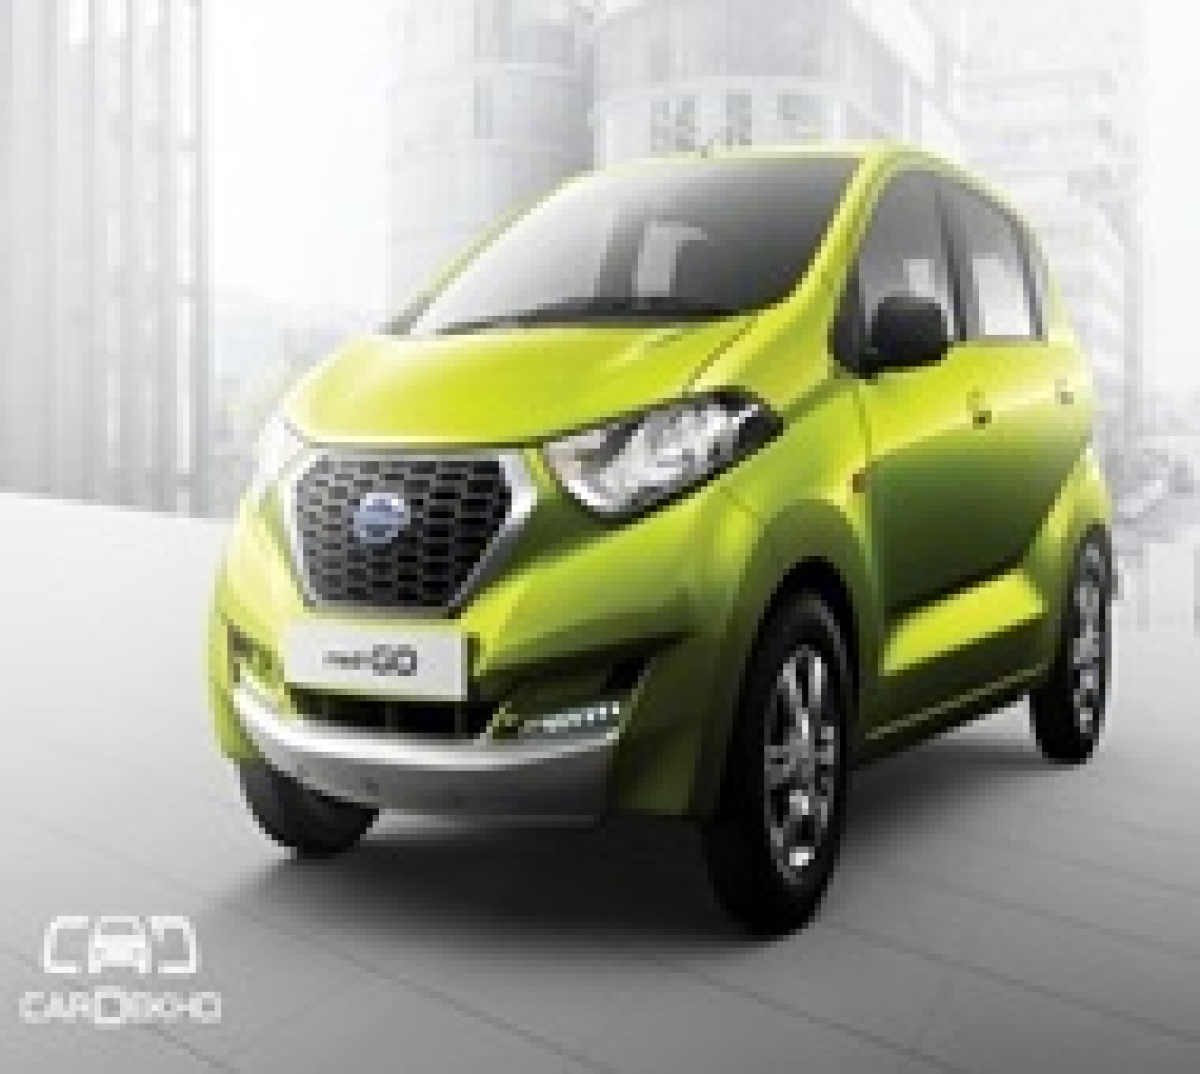 Datsun redi-GO to be Launched in the First Week of June